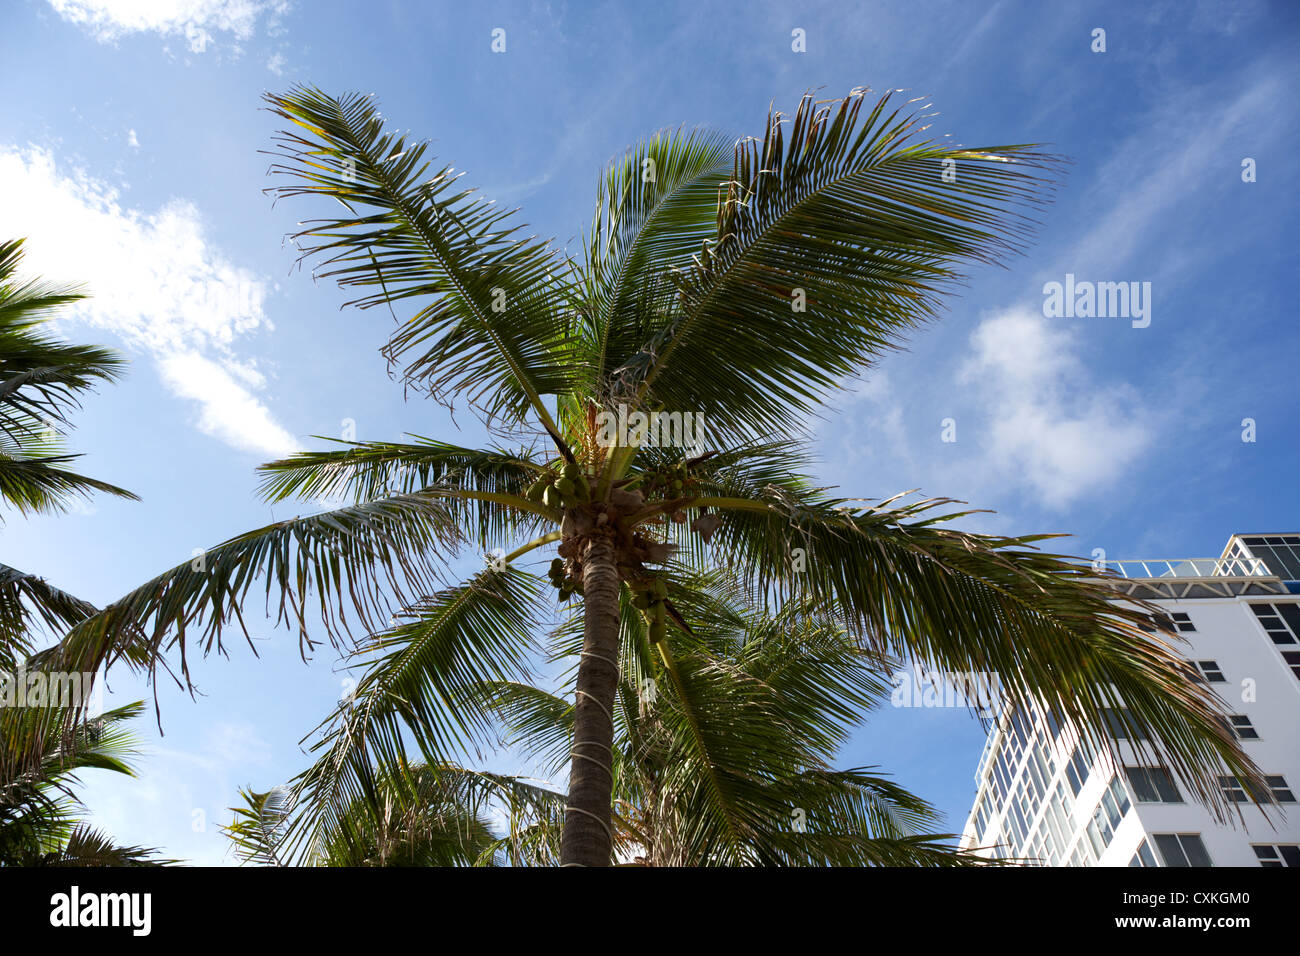 coconut palm tree next to hotel buildings fort lauderdale beach florida usa - Stock Image